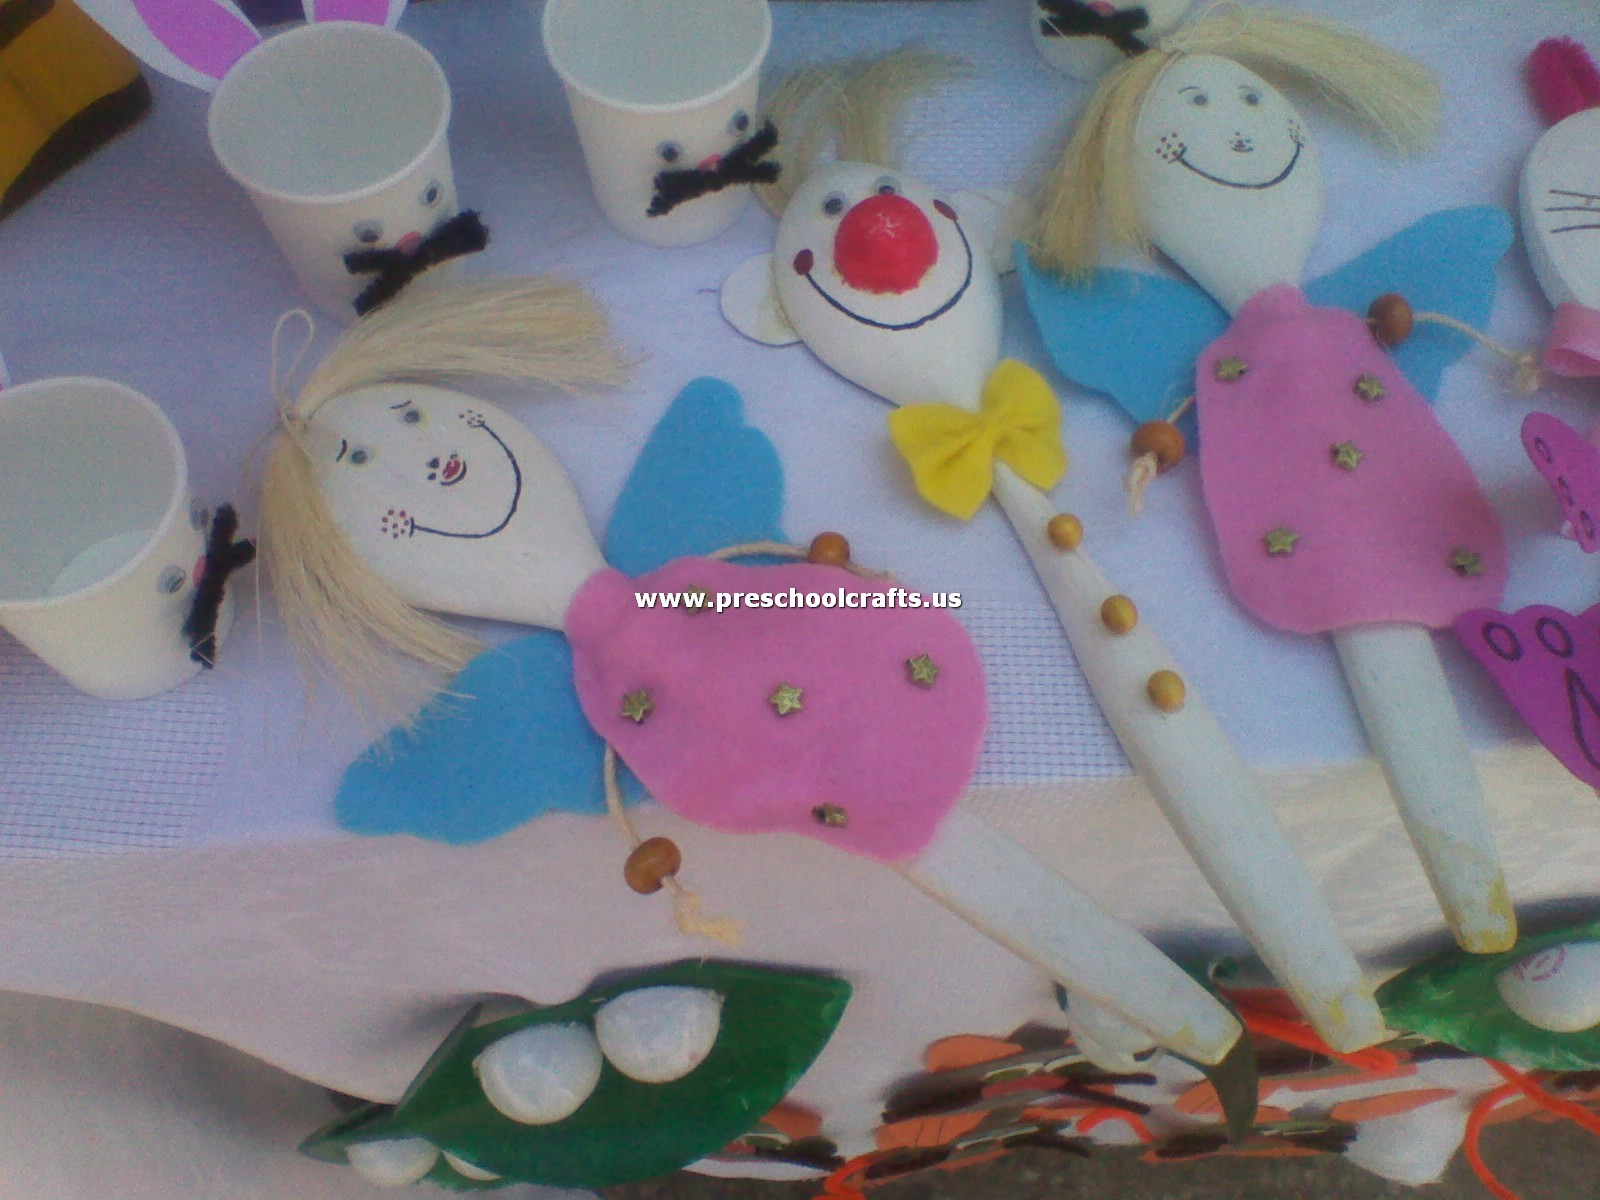 Spoon Craft Ideas For Kids